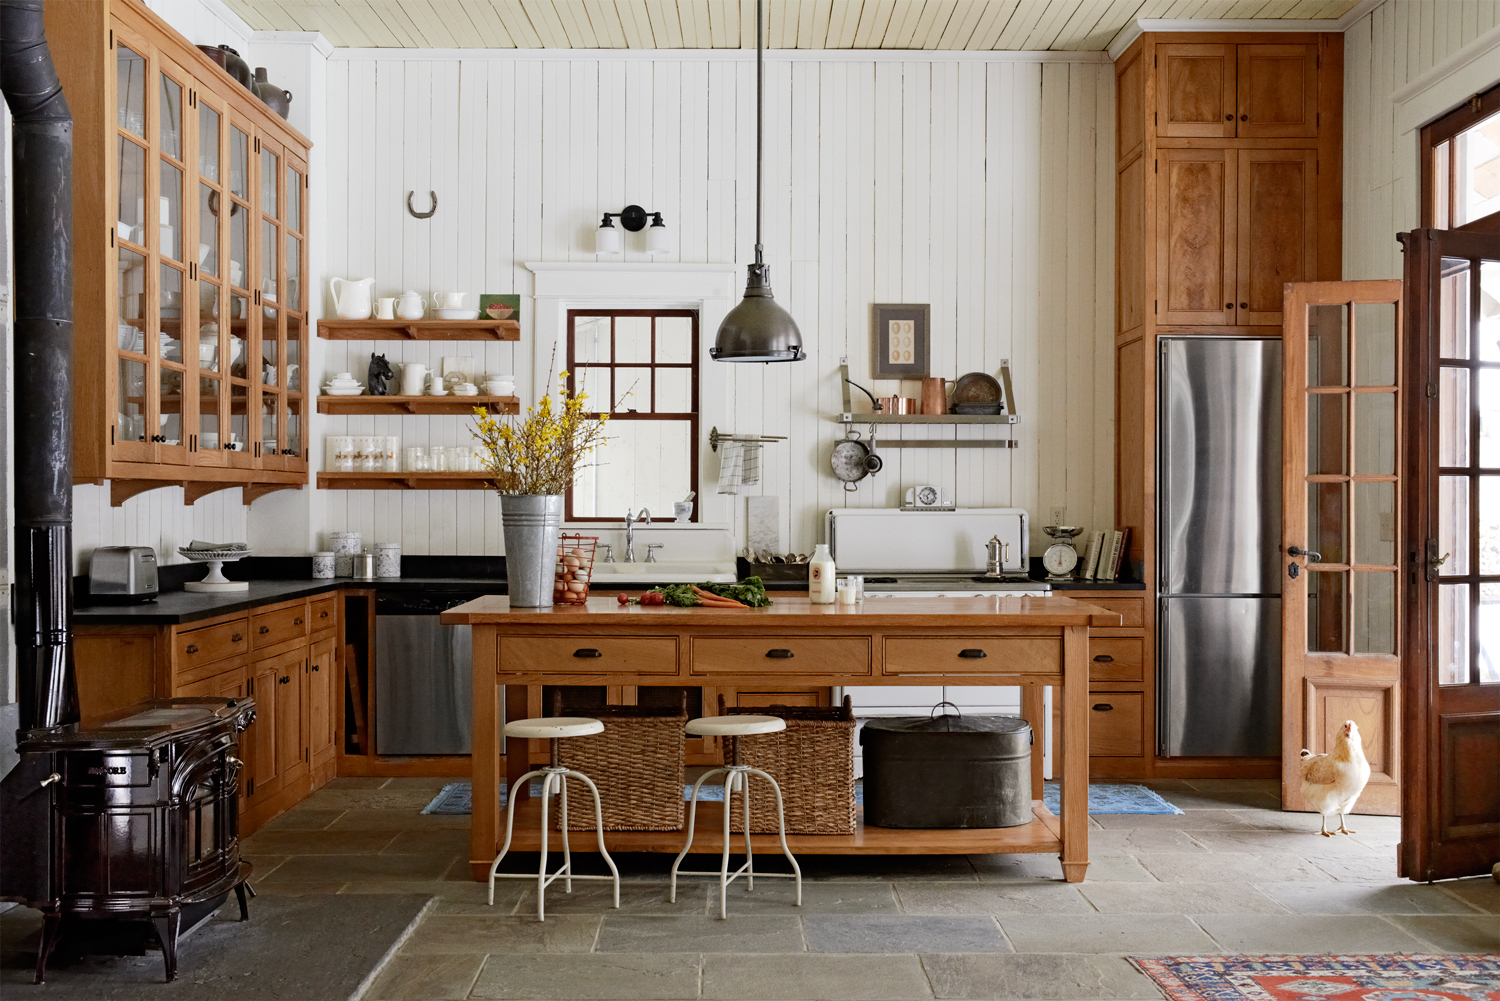 101 Kitchen Design Ideas of Country Kitchens Decorating